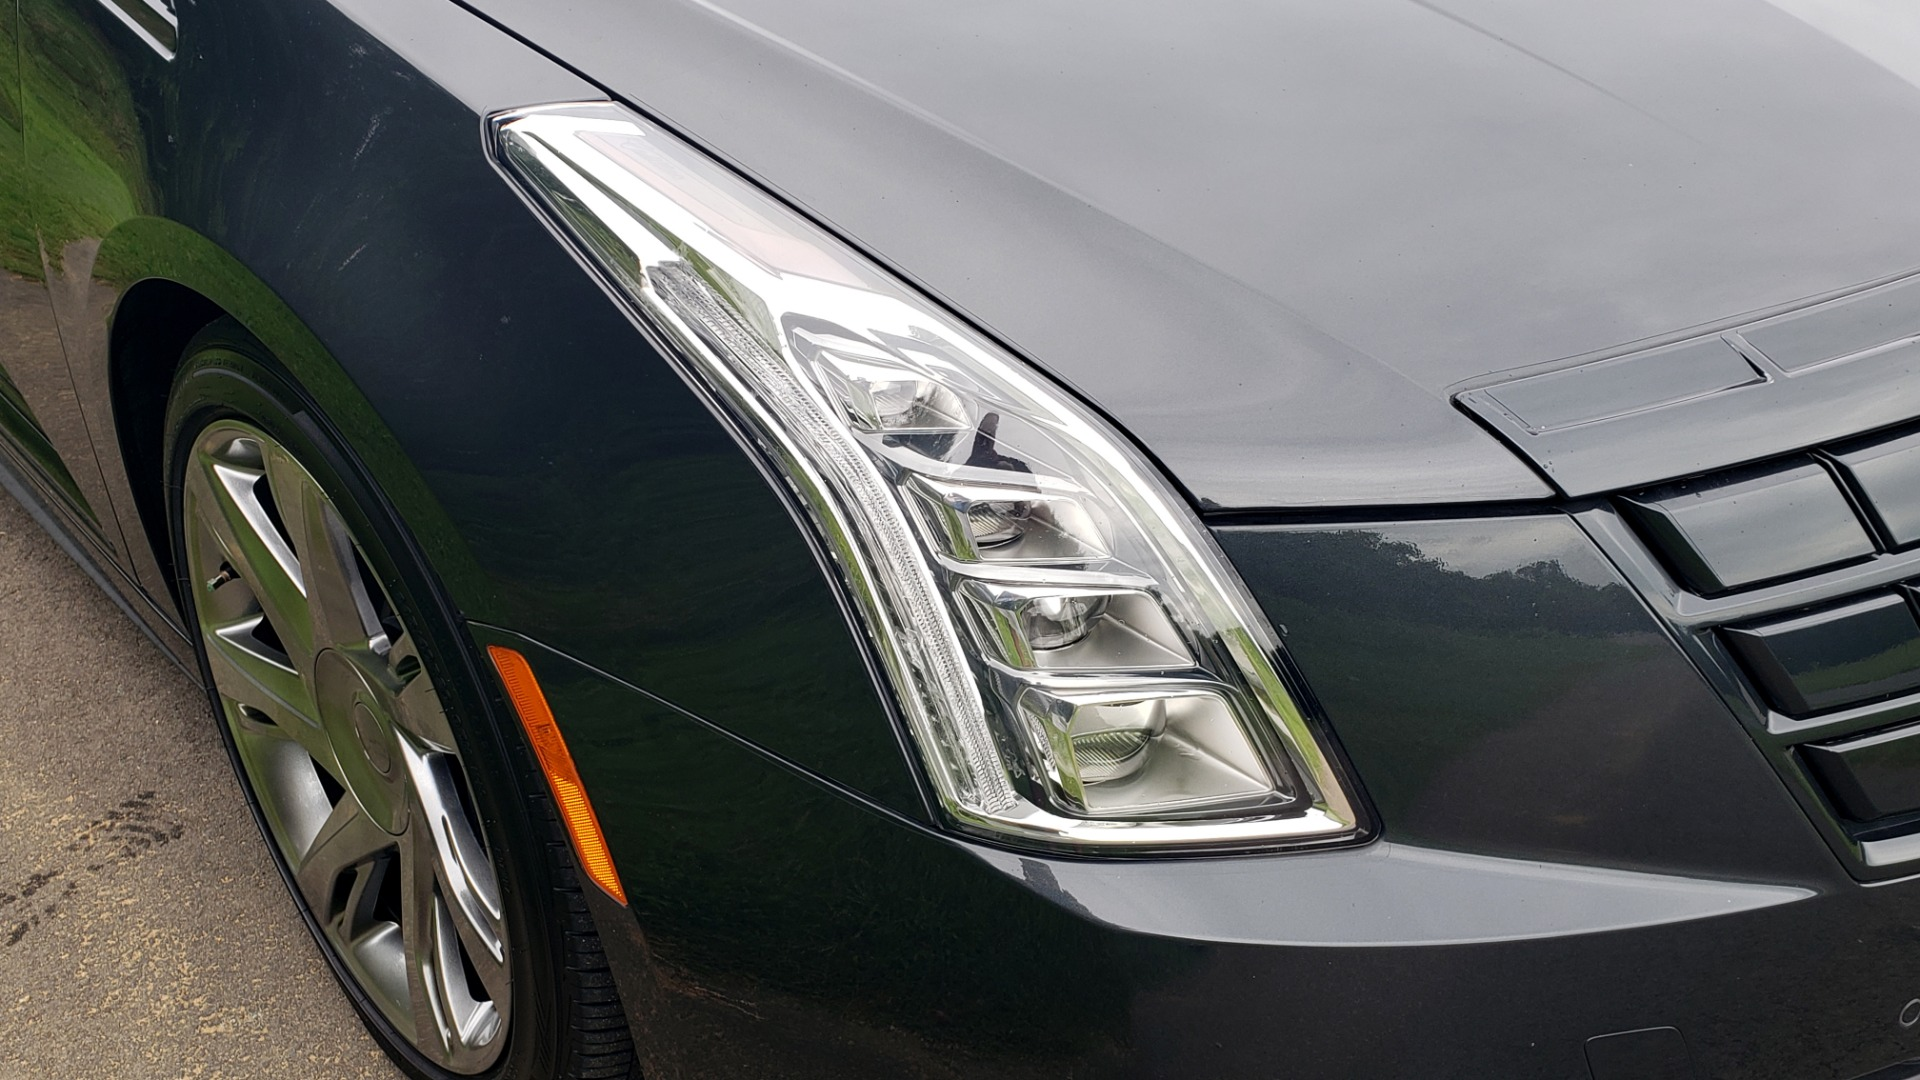 Used 2014 Cadillac ELR 2DR COUPE / HYBRID / NAV / BOSE / HEATED SEATS / REARVIEW for sale $34,000 at Formula Imports in Charlotte NC 28227 12